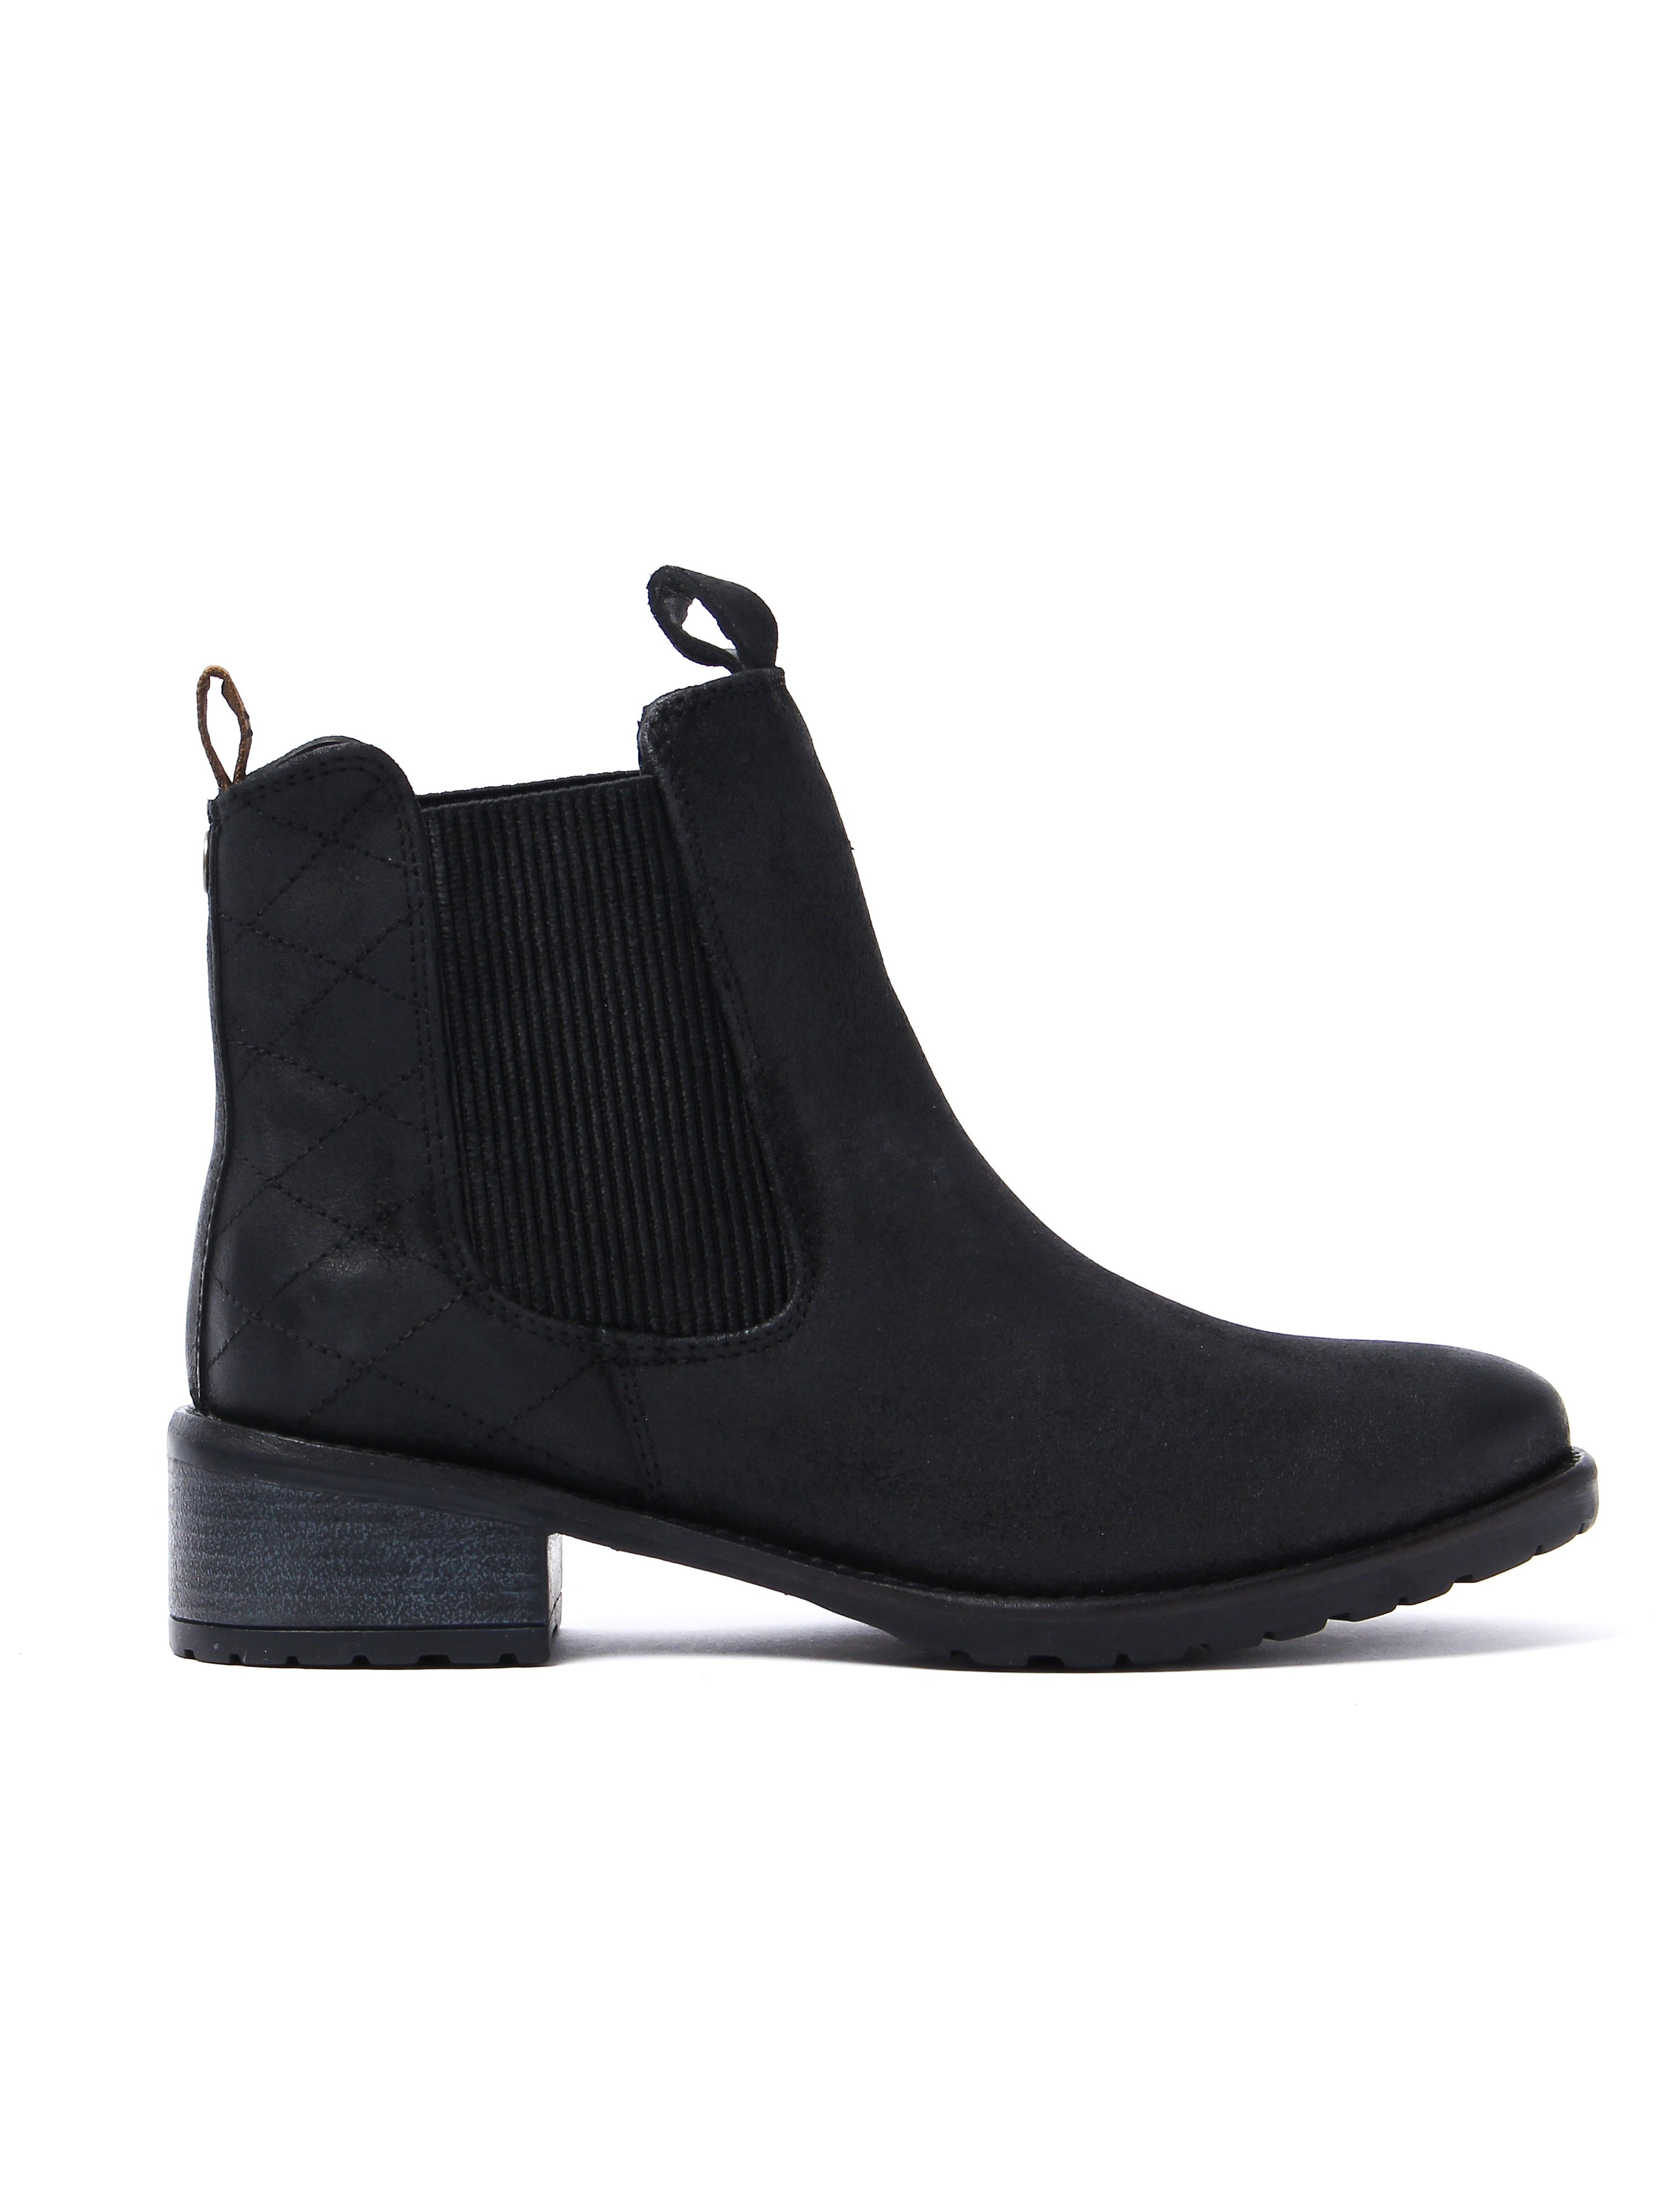 Barbour Women's Latimer Chelsea Boots - Black Waxy